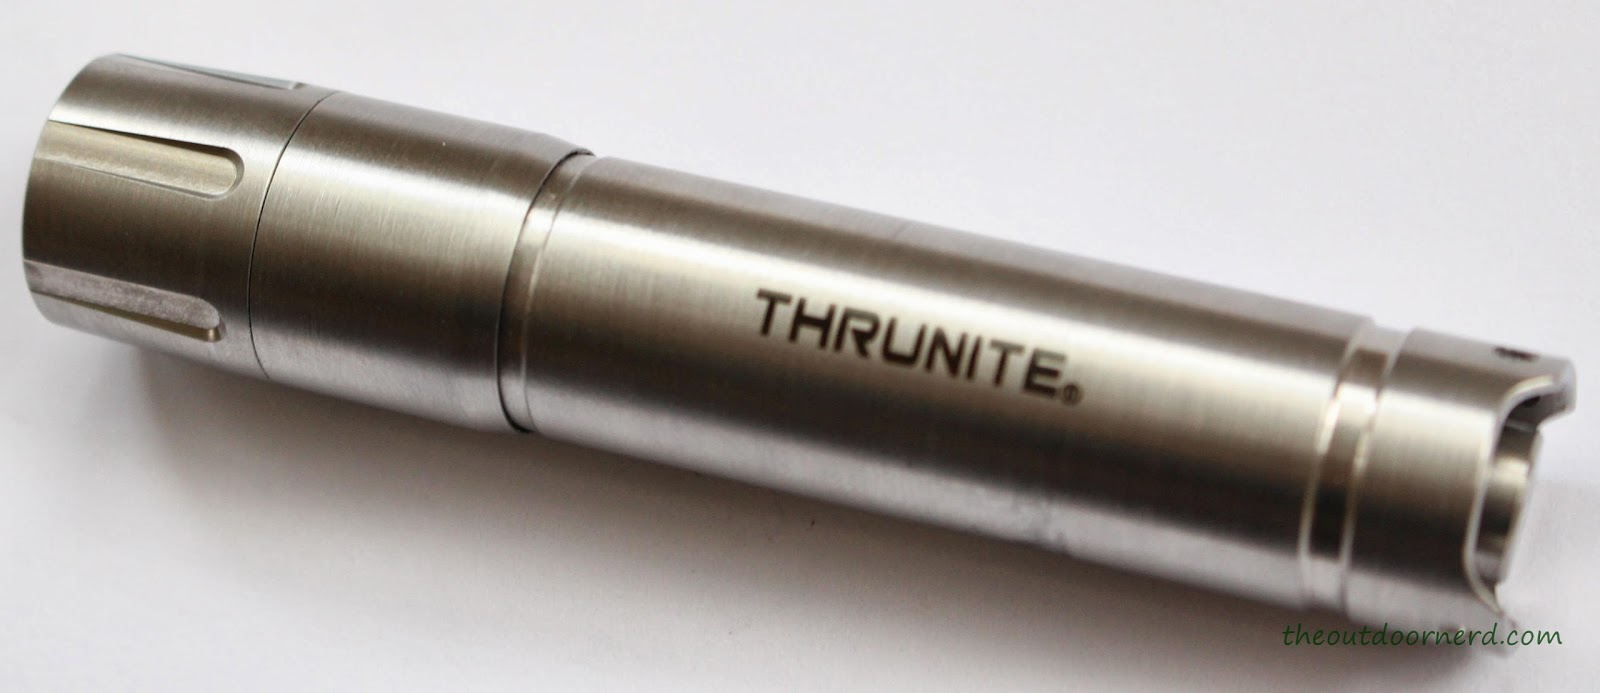 Thrunite T10S 1xAA Flashlight Product Image 1